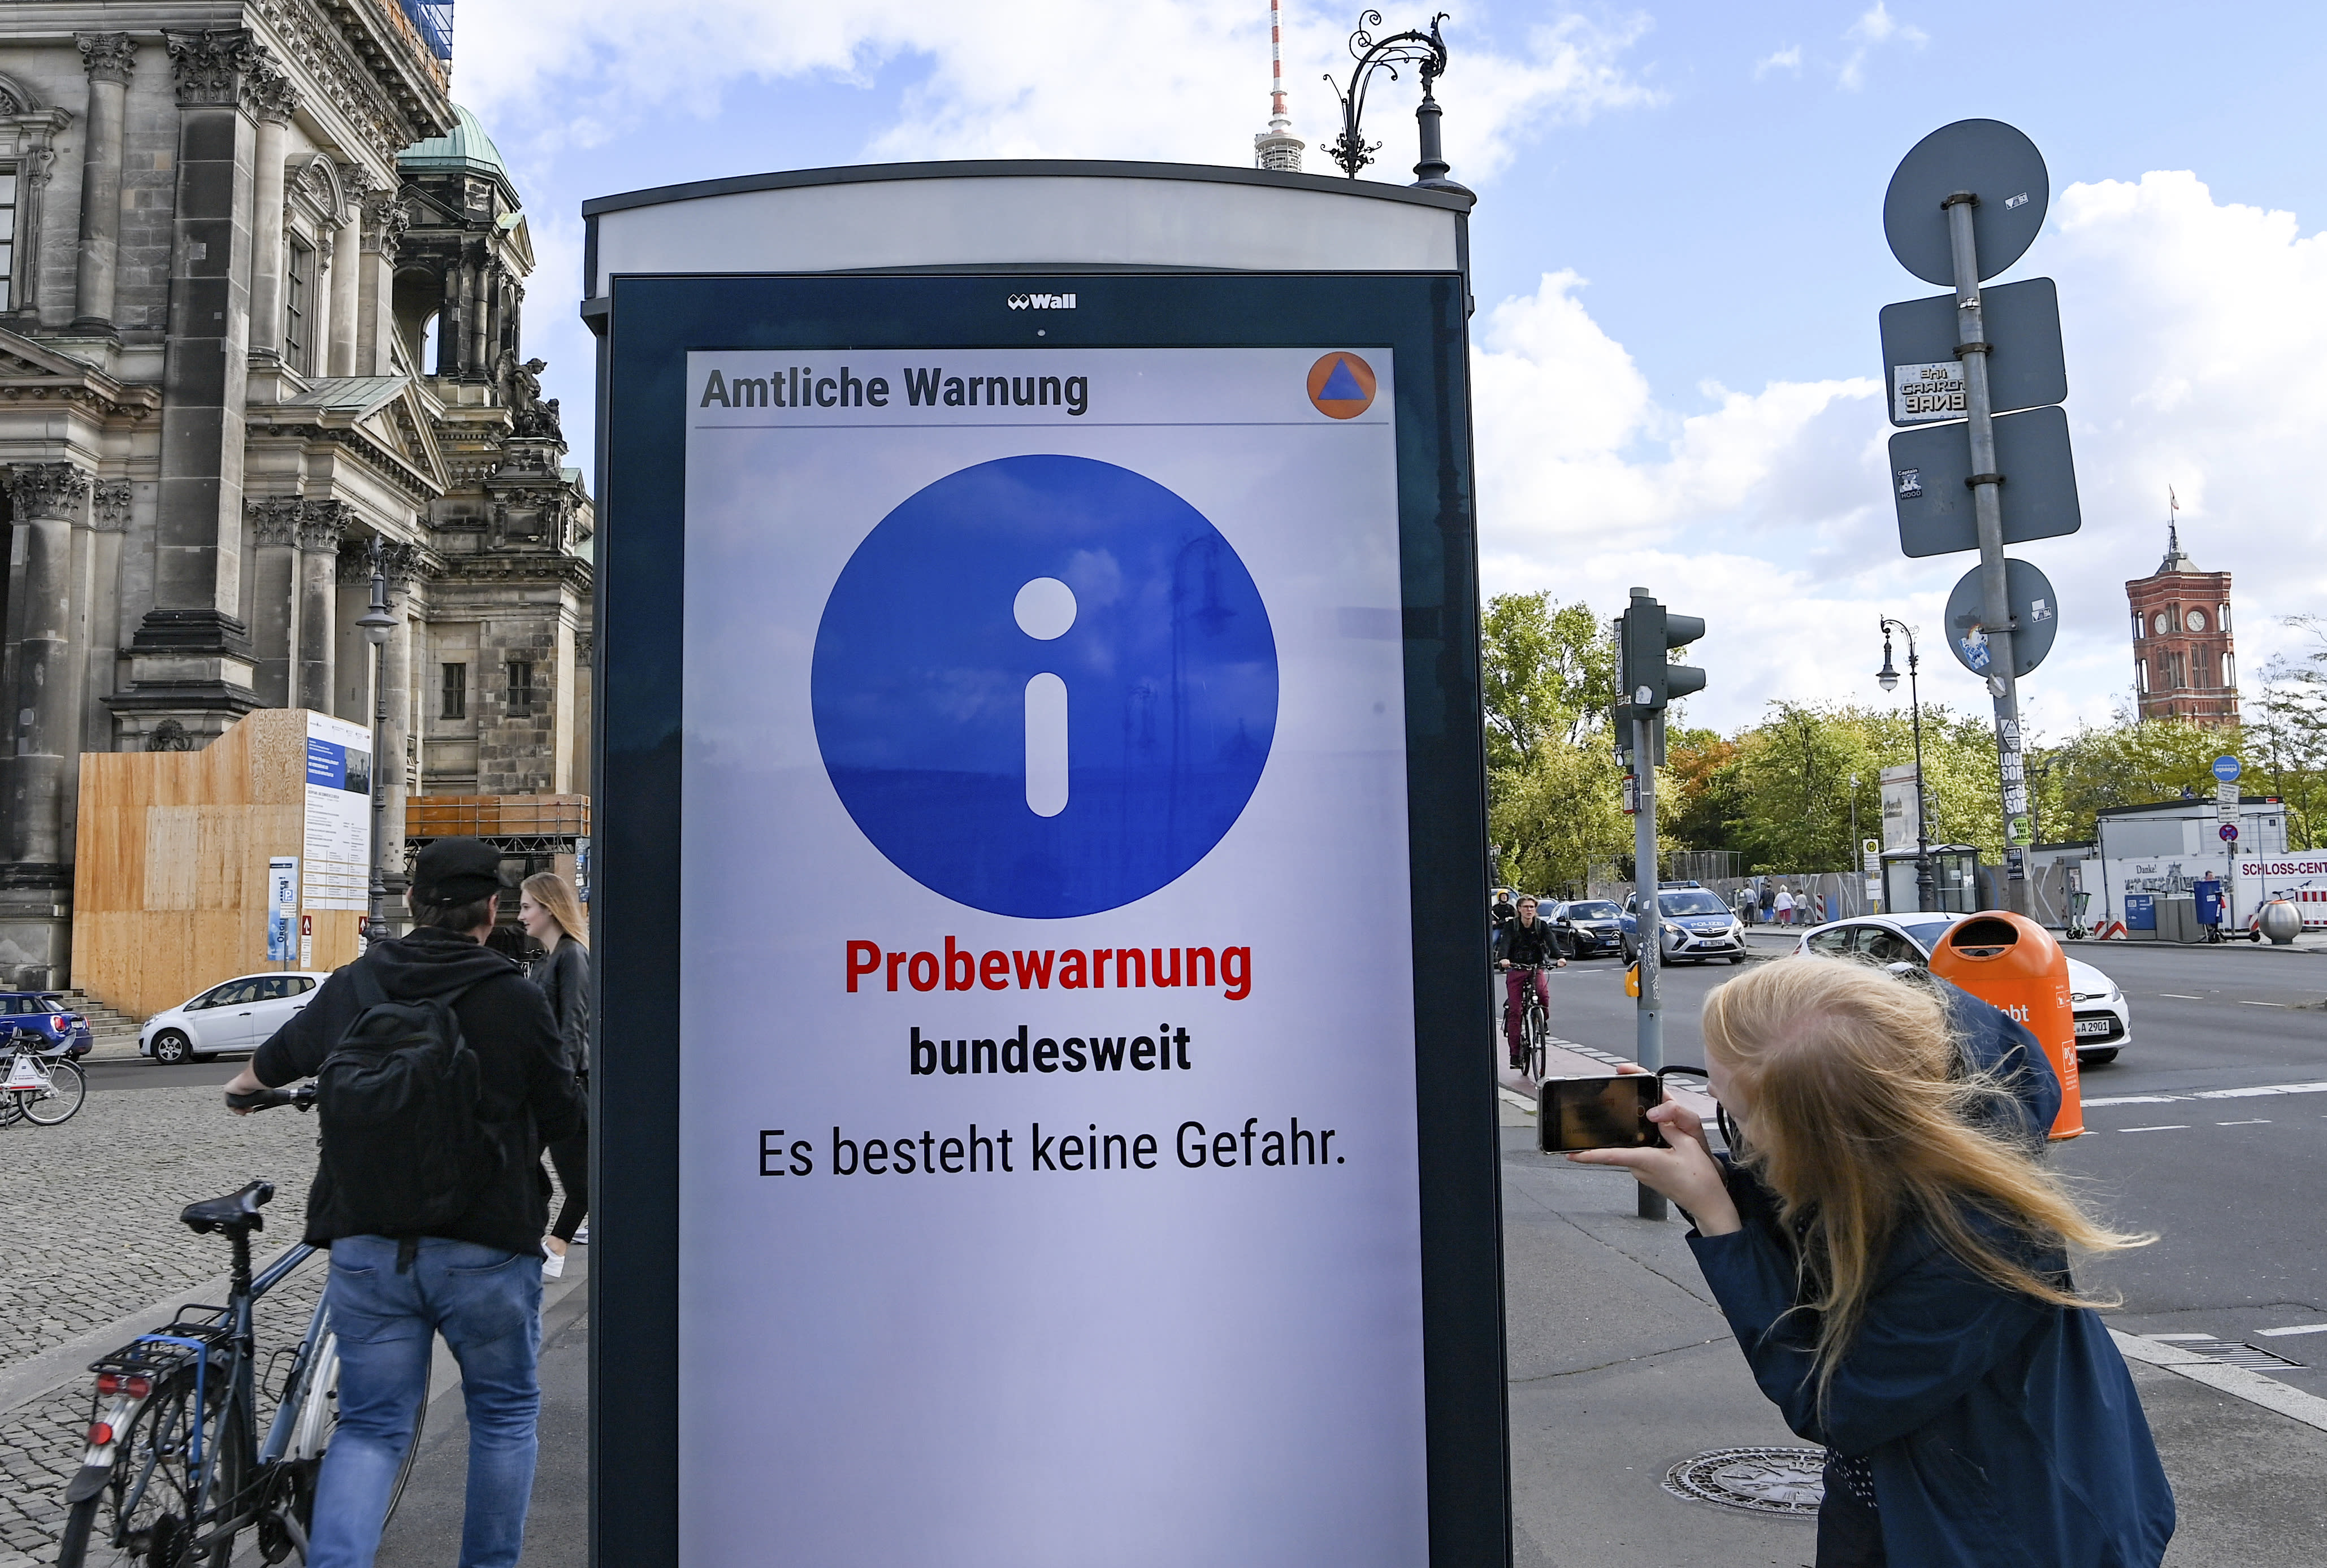 """""""Trial warning nationwide. There is no danger"""" is written at the first nationwide warning day on an information board in Berlin, Germany, Thursday, Sept. 10, 2020. For the first time in 30 years, Germany was planning a nationwide test of sirens on Thursday morning _ only the alarm didn't go off in some places and push alerts never arrived or popped up late on many users' smart phones. (Jens Kalaene/dpa via AP)"""